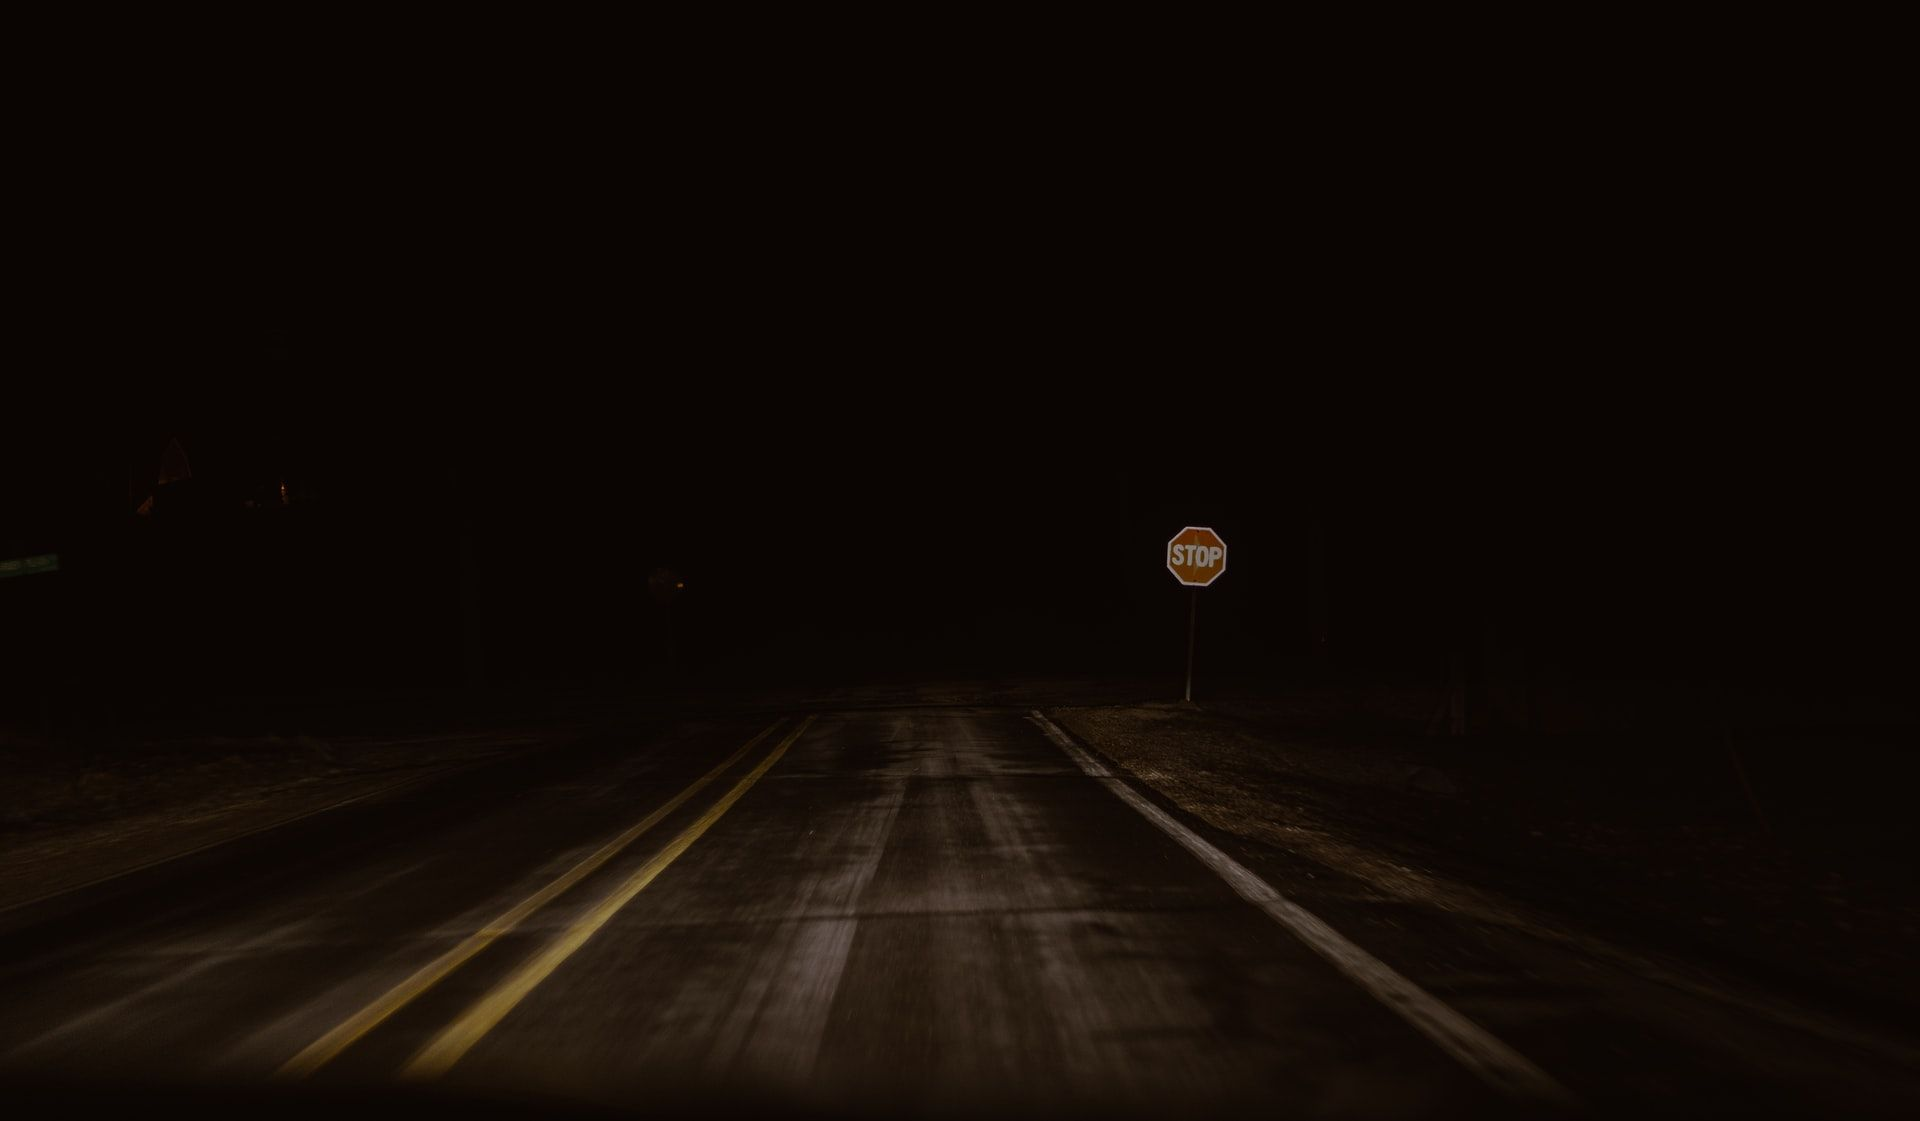 Road in the dark with poor lighting, a stop sign just visible in the distance